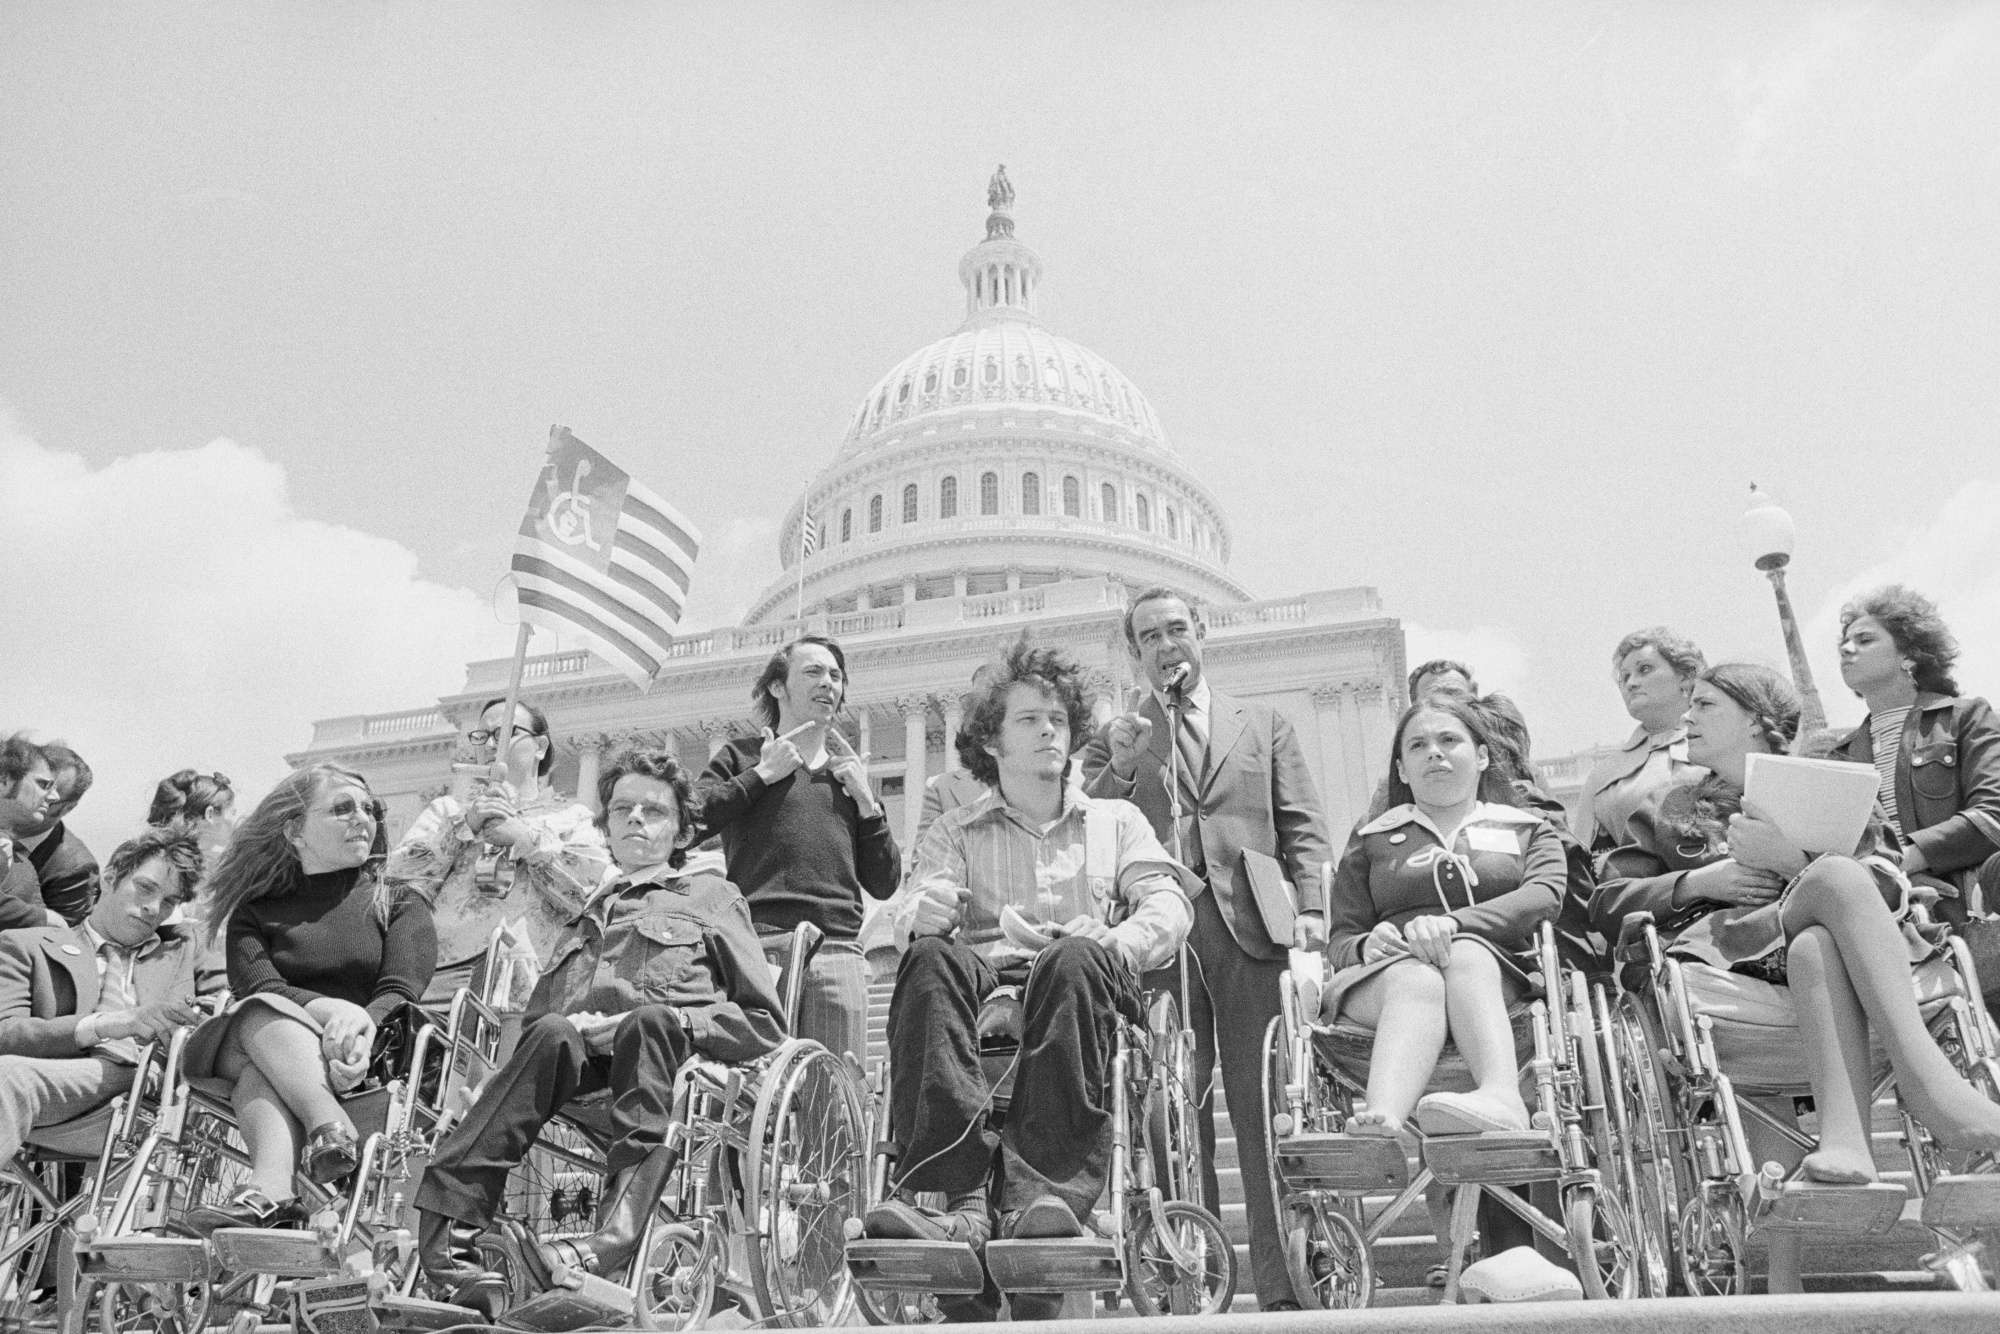 """Protesters lobbying for an """"Equal Rights Proclamation"""" fordisabled peopleat the U.S. Capitolin 1972. Among their demands were curb cuts at street corners and better access to public transit. The Americans with Disabilities Act mandated curb cuts in 1990."""